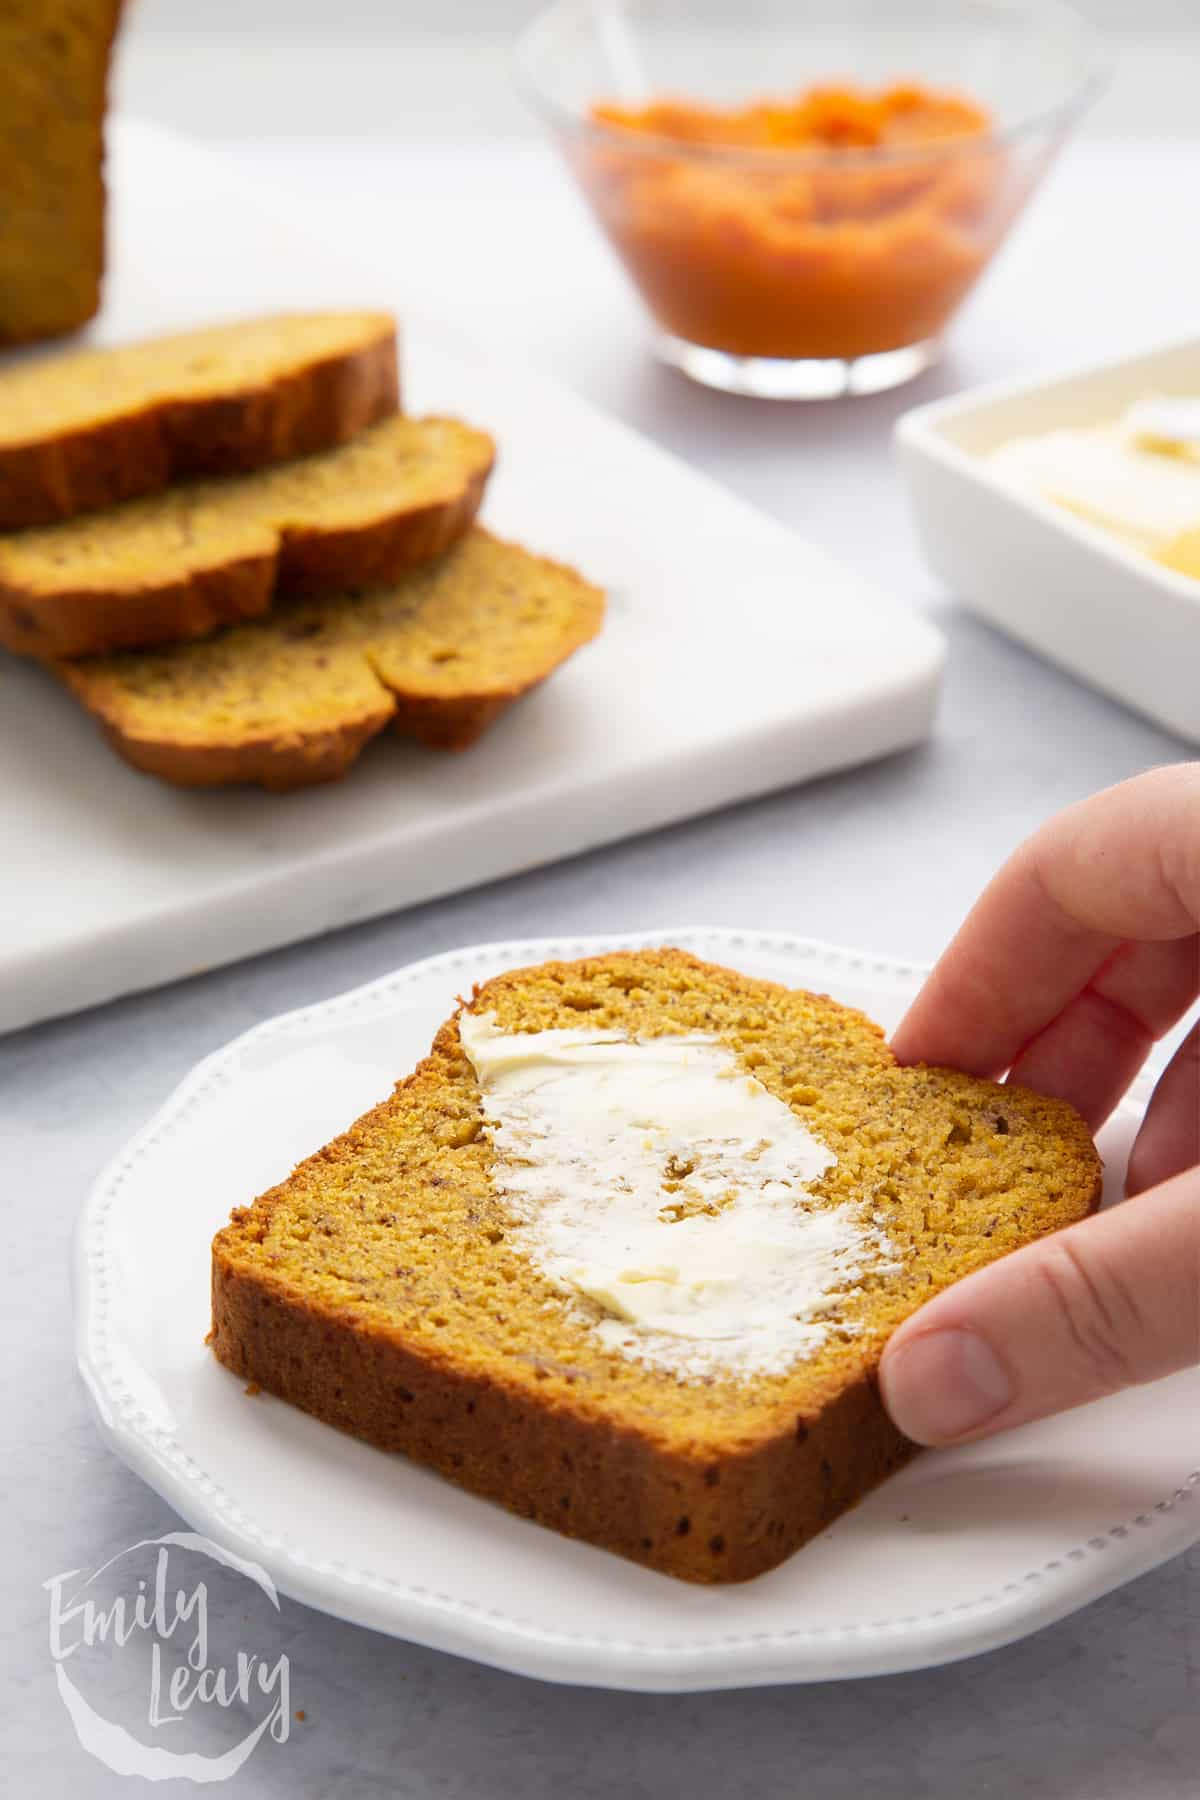 A buttered slice of pumpkin banana bread on a white plate. A hand reaches to take it.